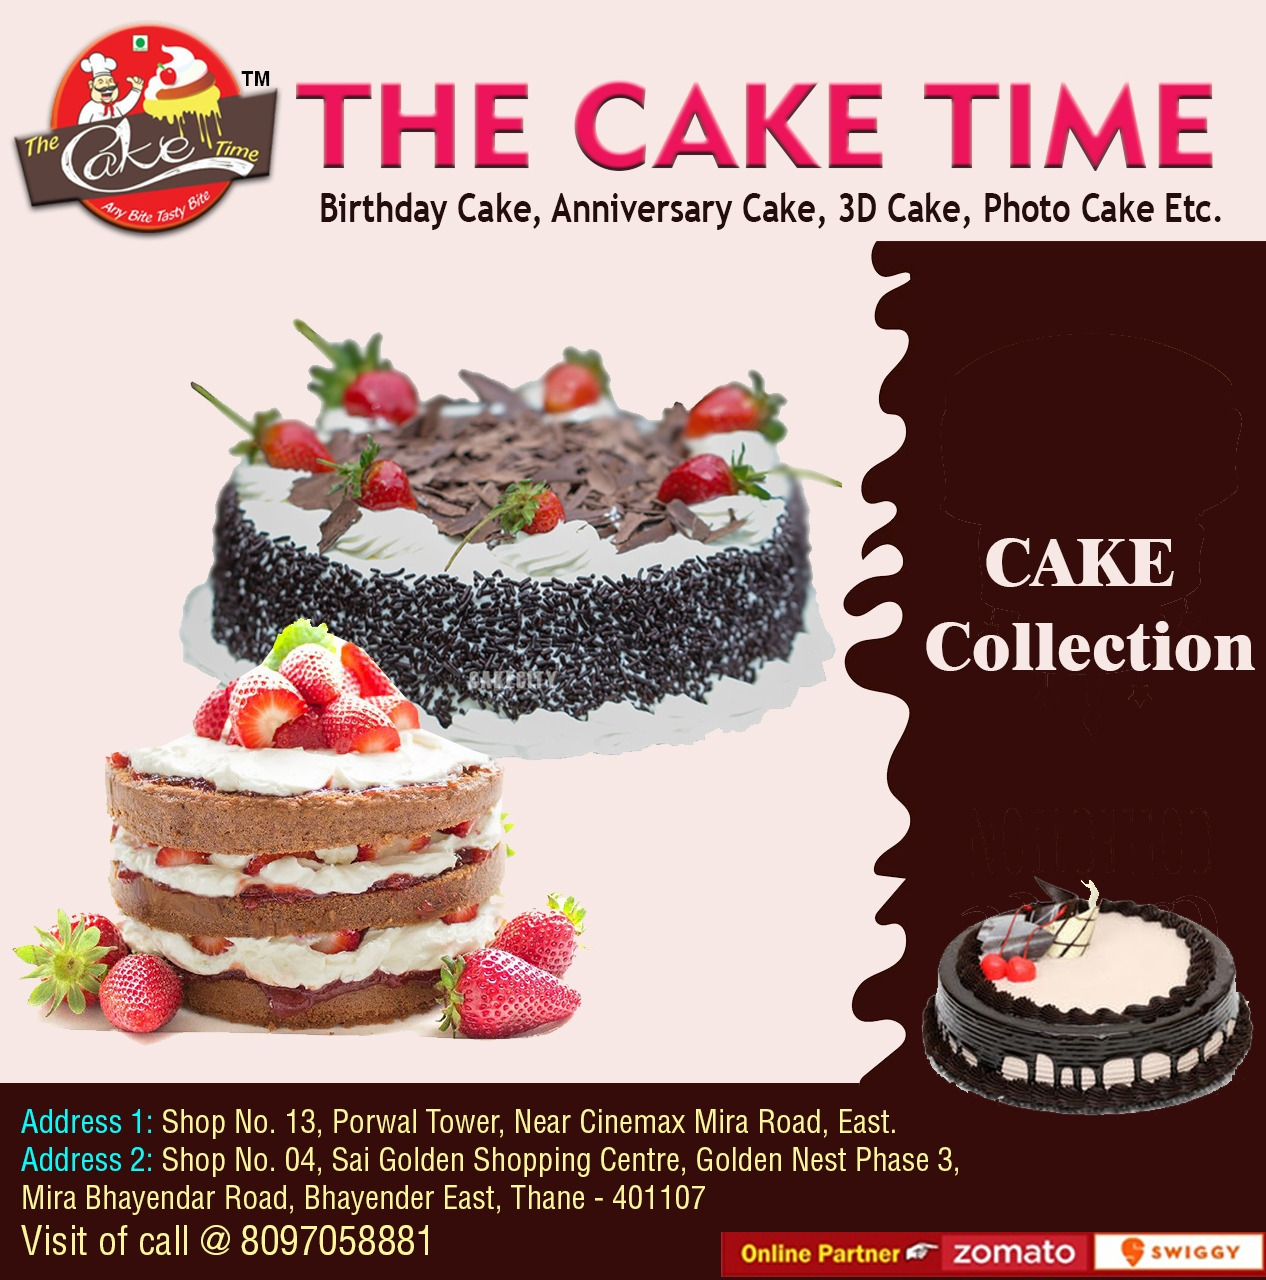 THE CAKE TIME